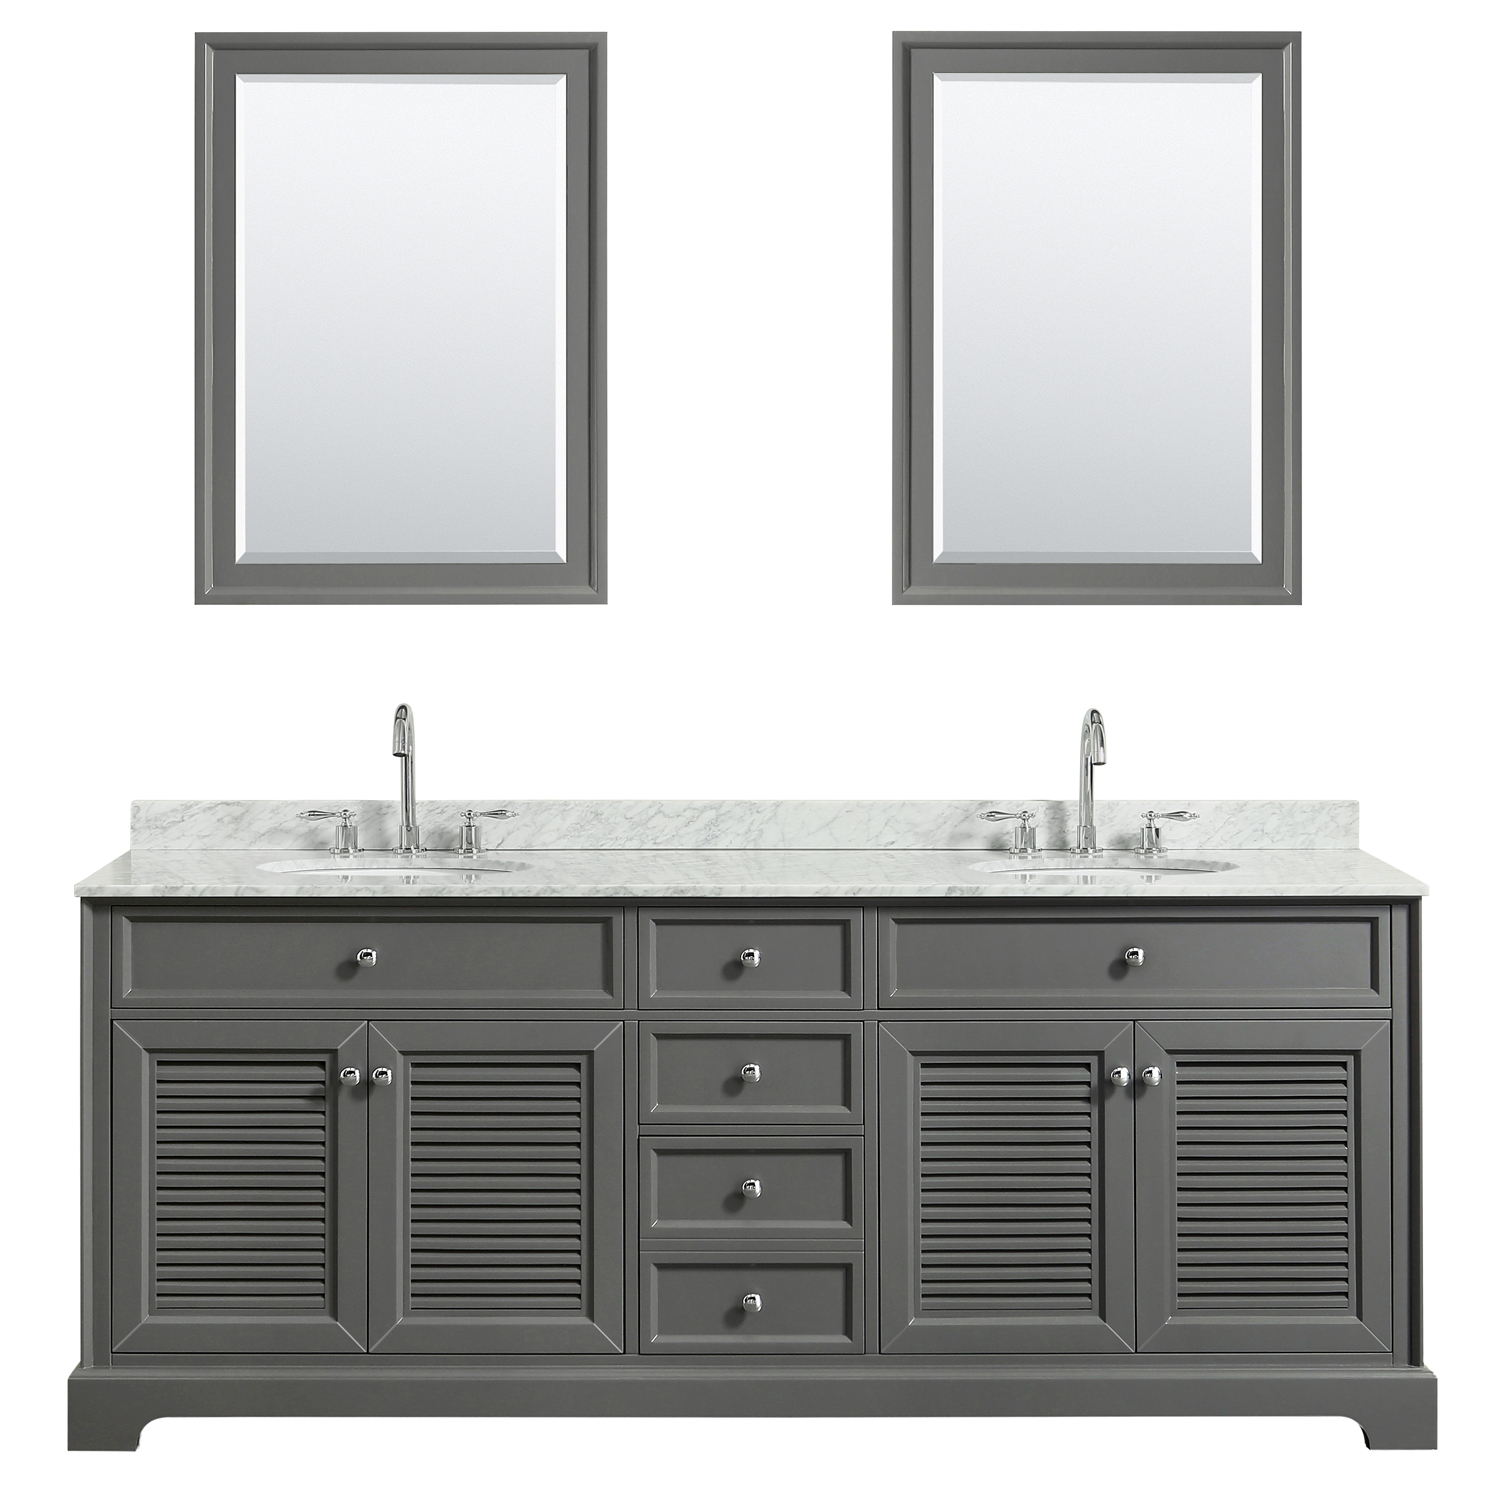 """80"""" Double Bathroom Vanity in White Carrara Marble Countertop with Undermount Sinks, Medicine Cabinet, Mirror and Color Options"""